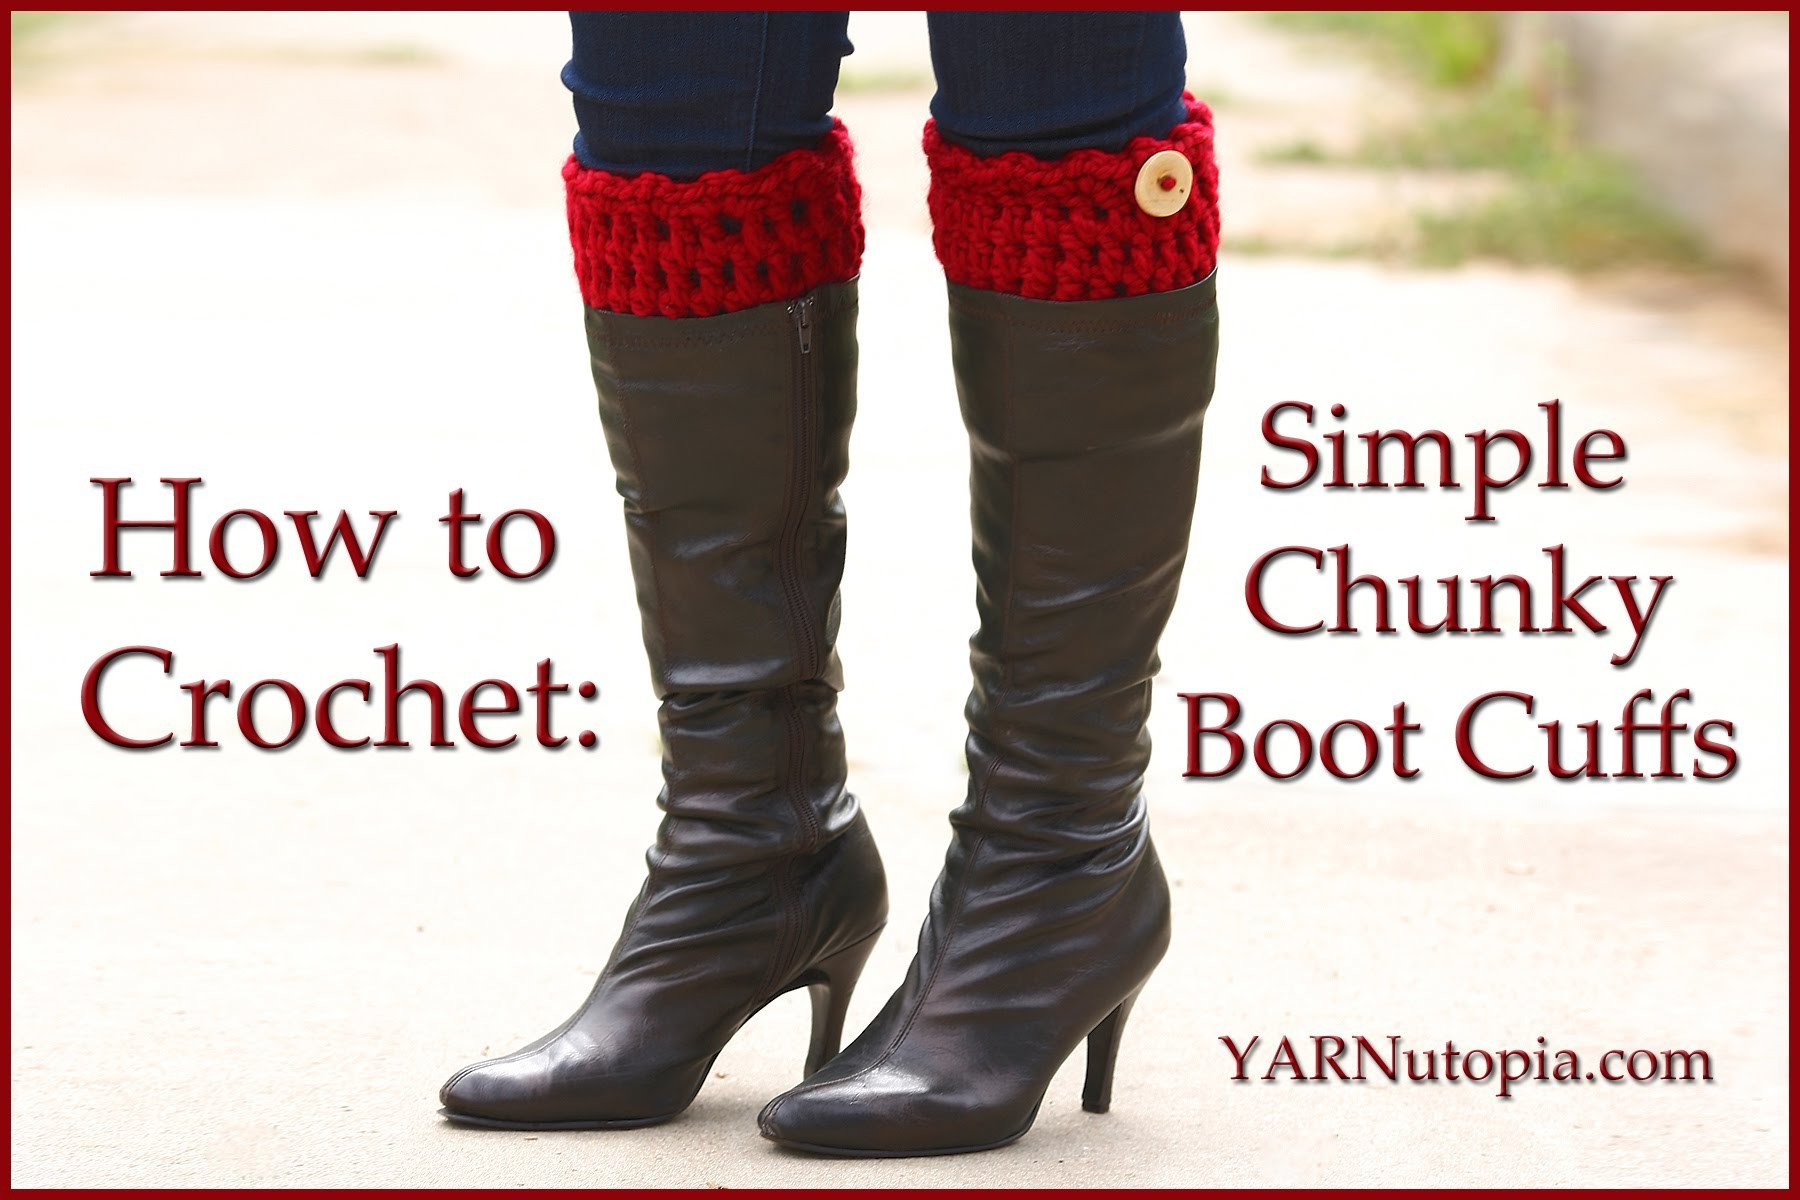 How to Crochet Simple Chunky Boot Cuffs